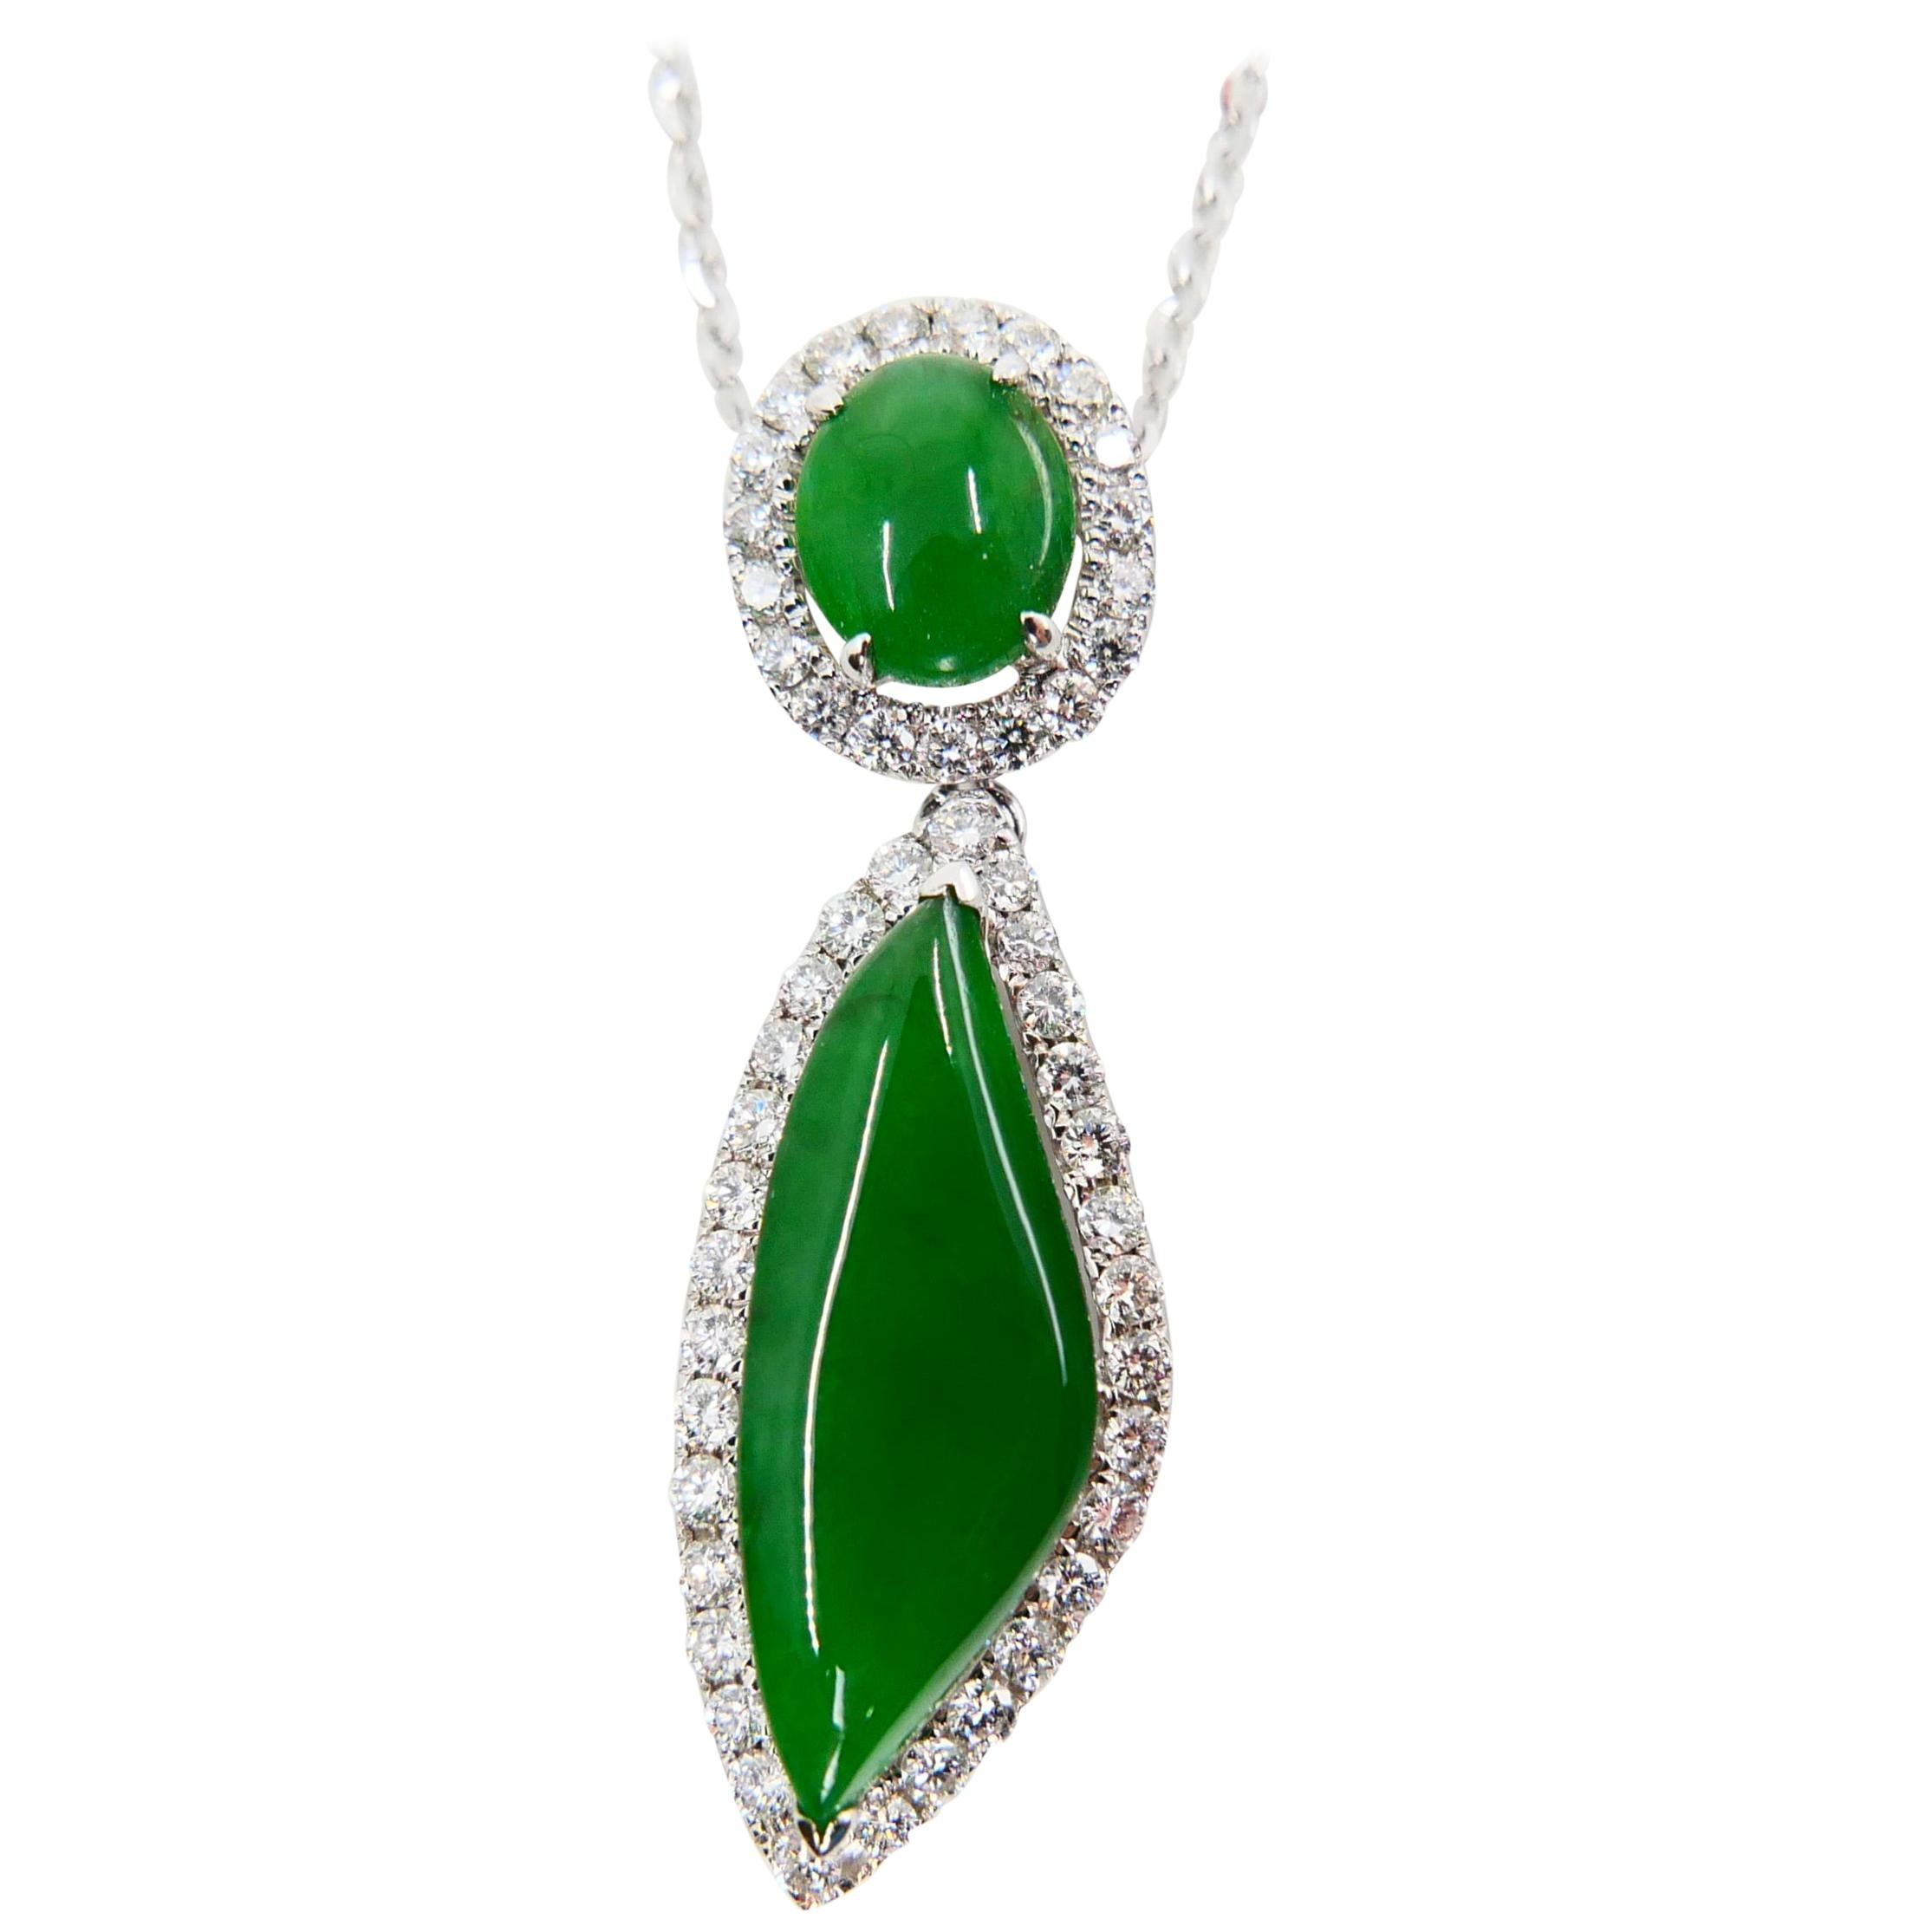 Certified Natural Jadeite Jade And Diamond Drop Pendant, Imperial Green Color